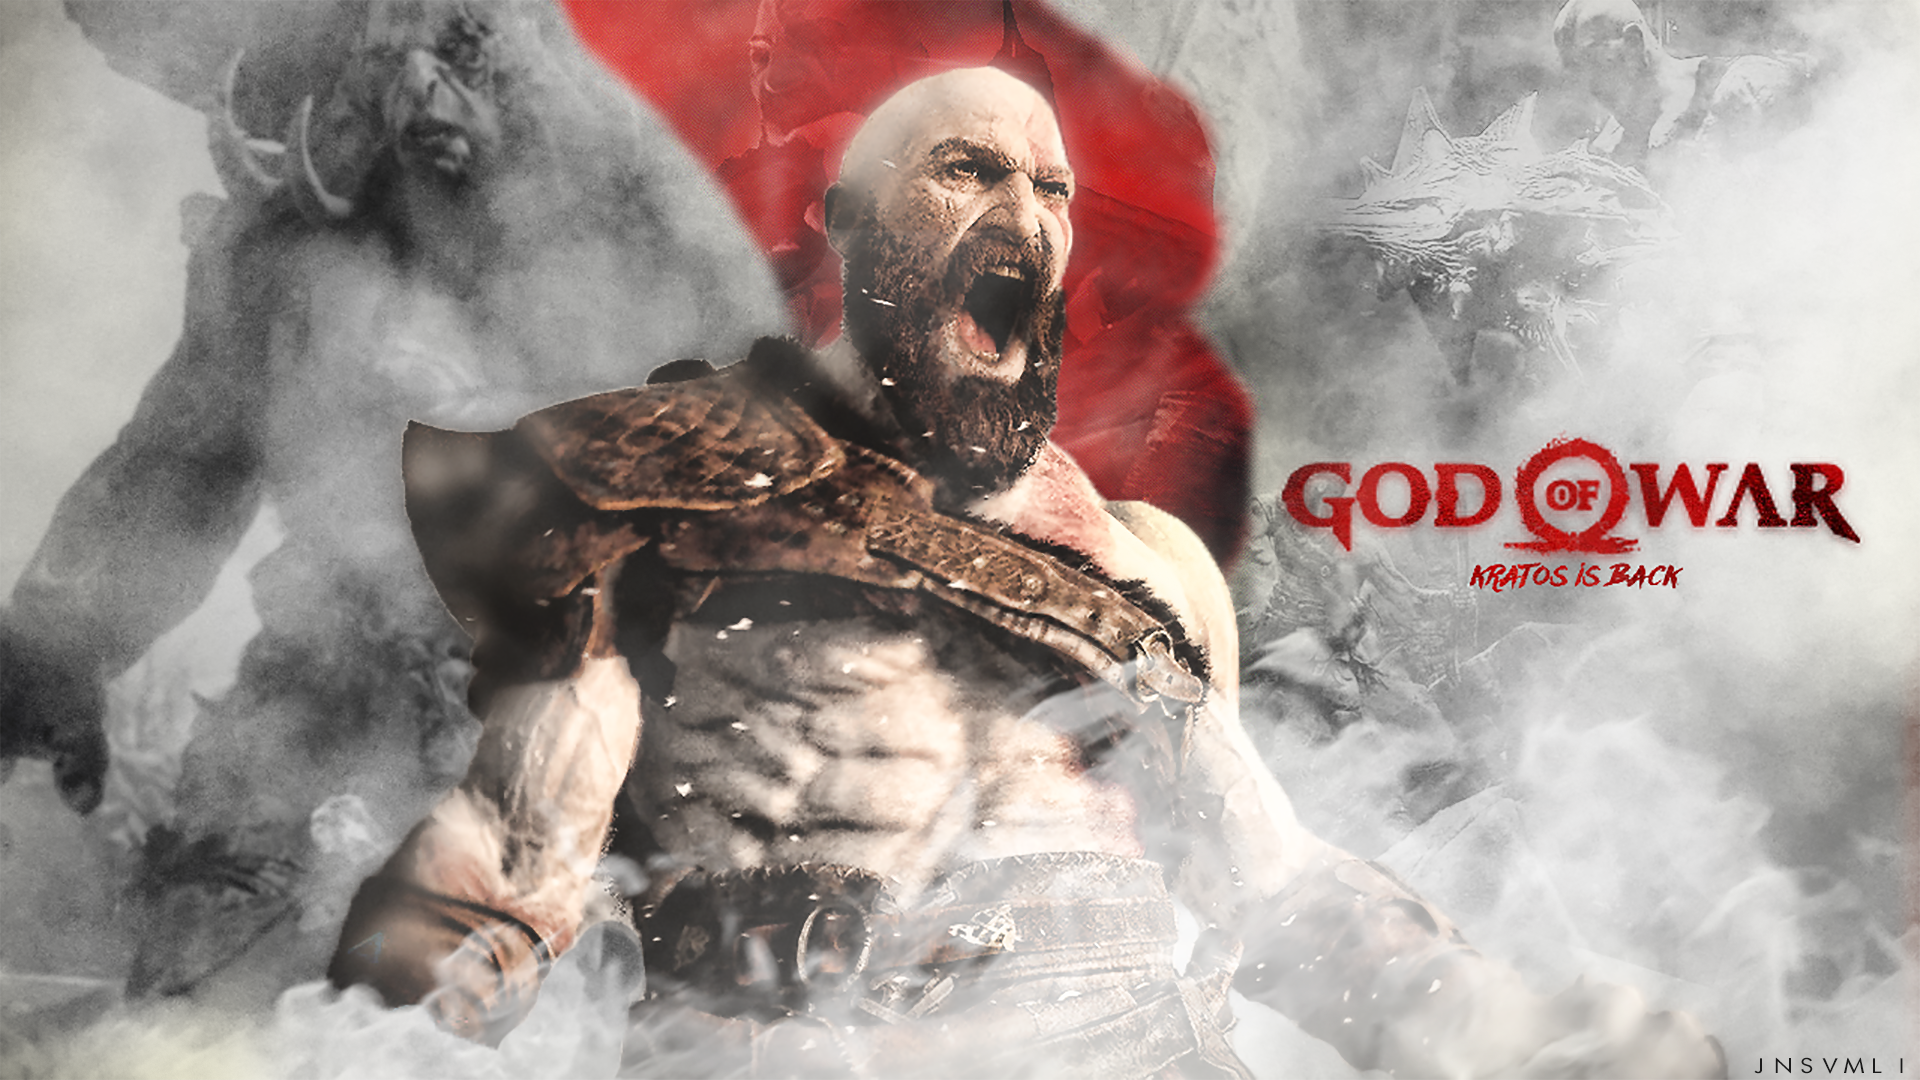 Wallpaper Of God Of War 4